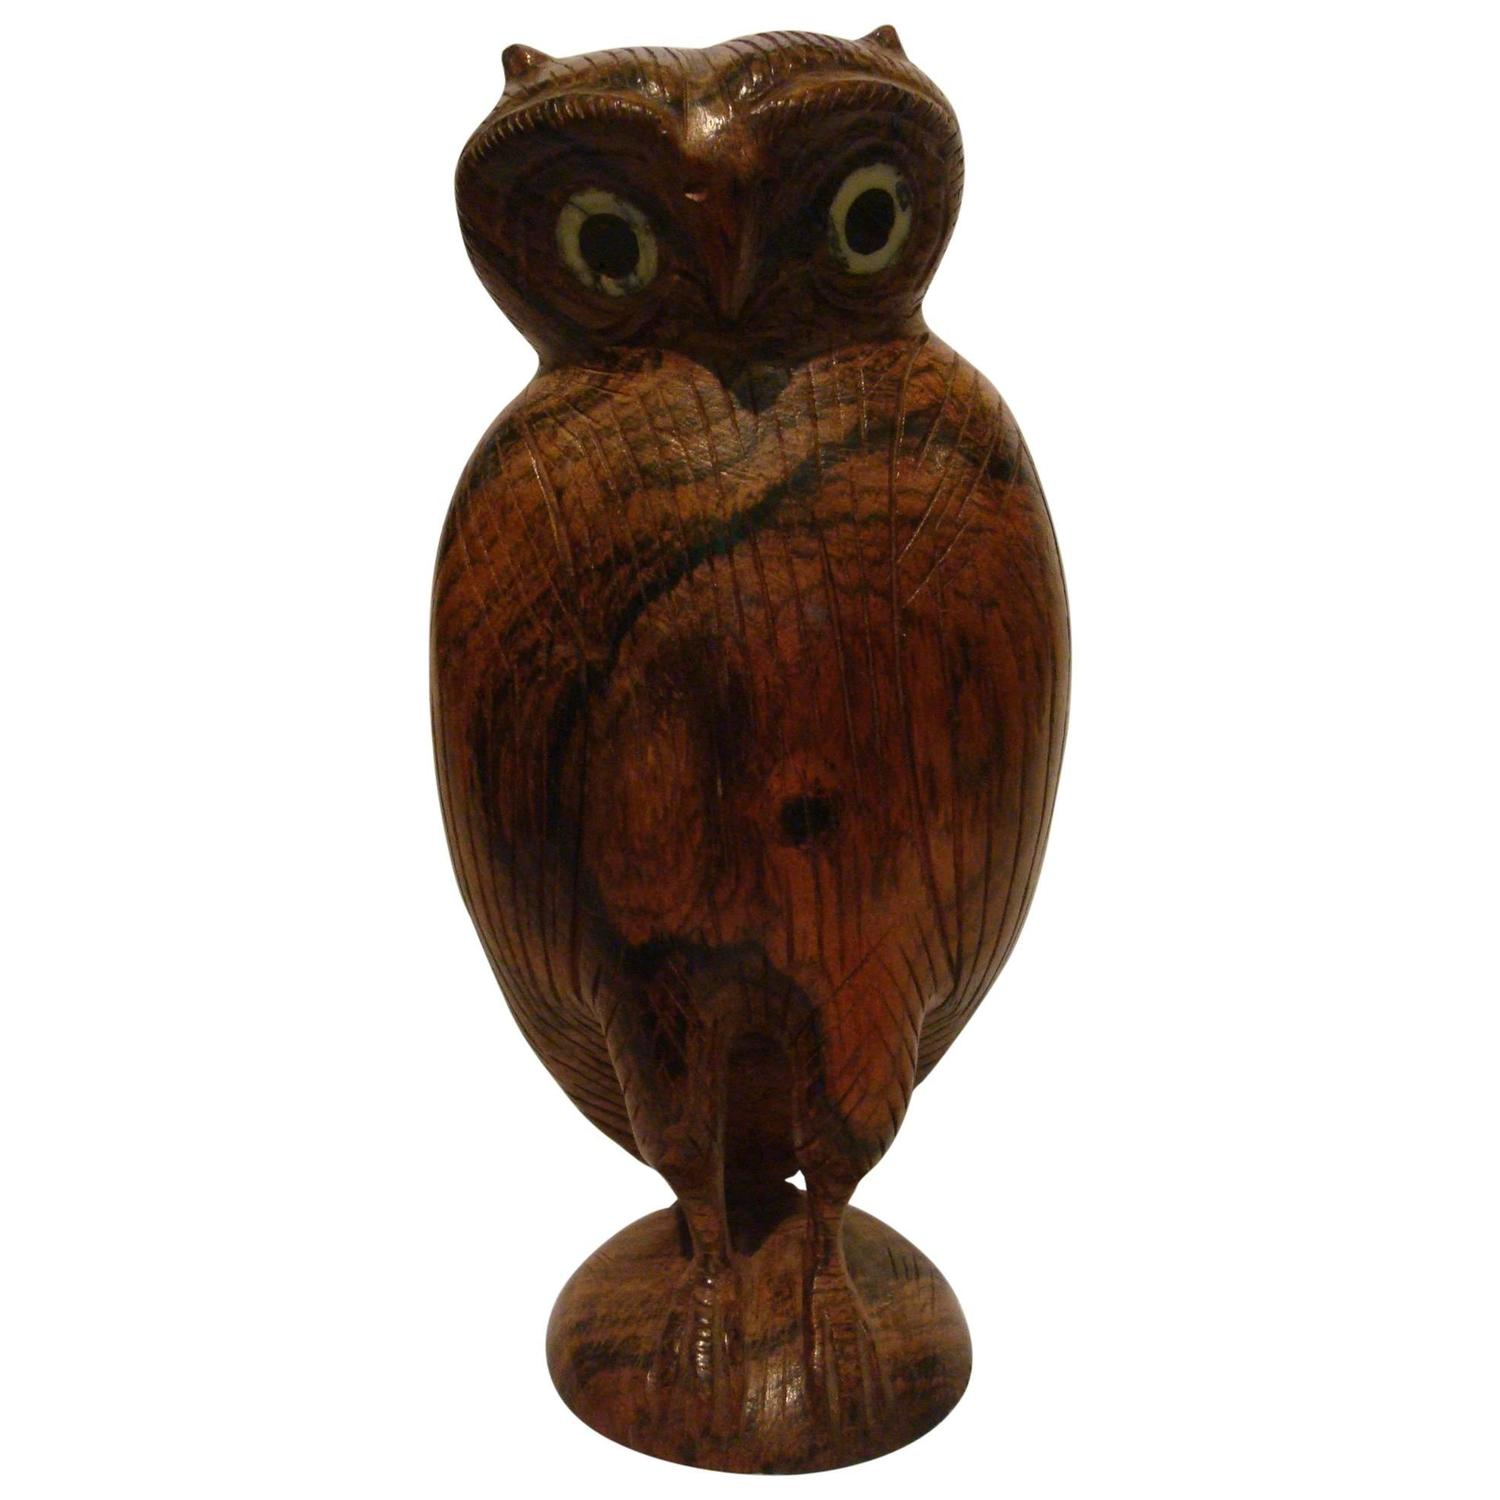 Folk art standing owl wooden carved sculpture for sale at